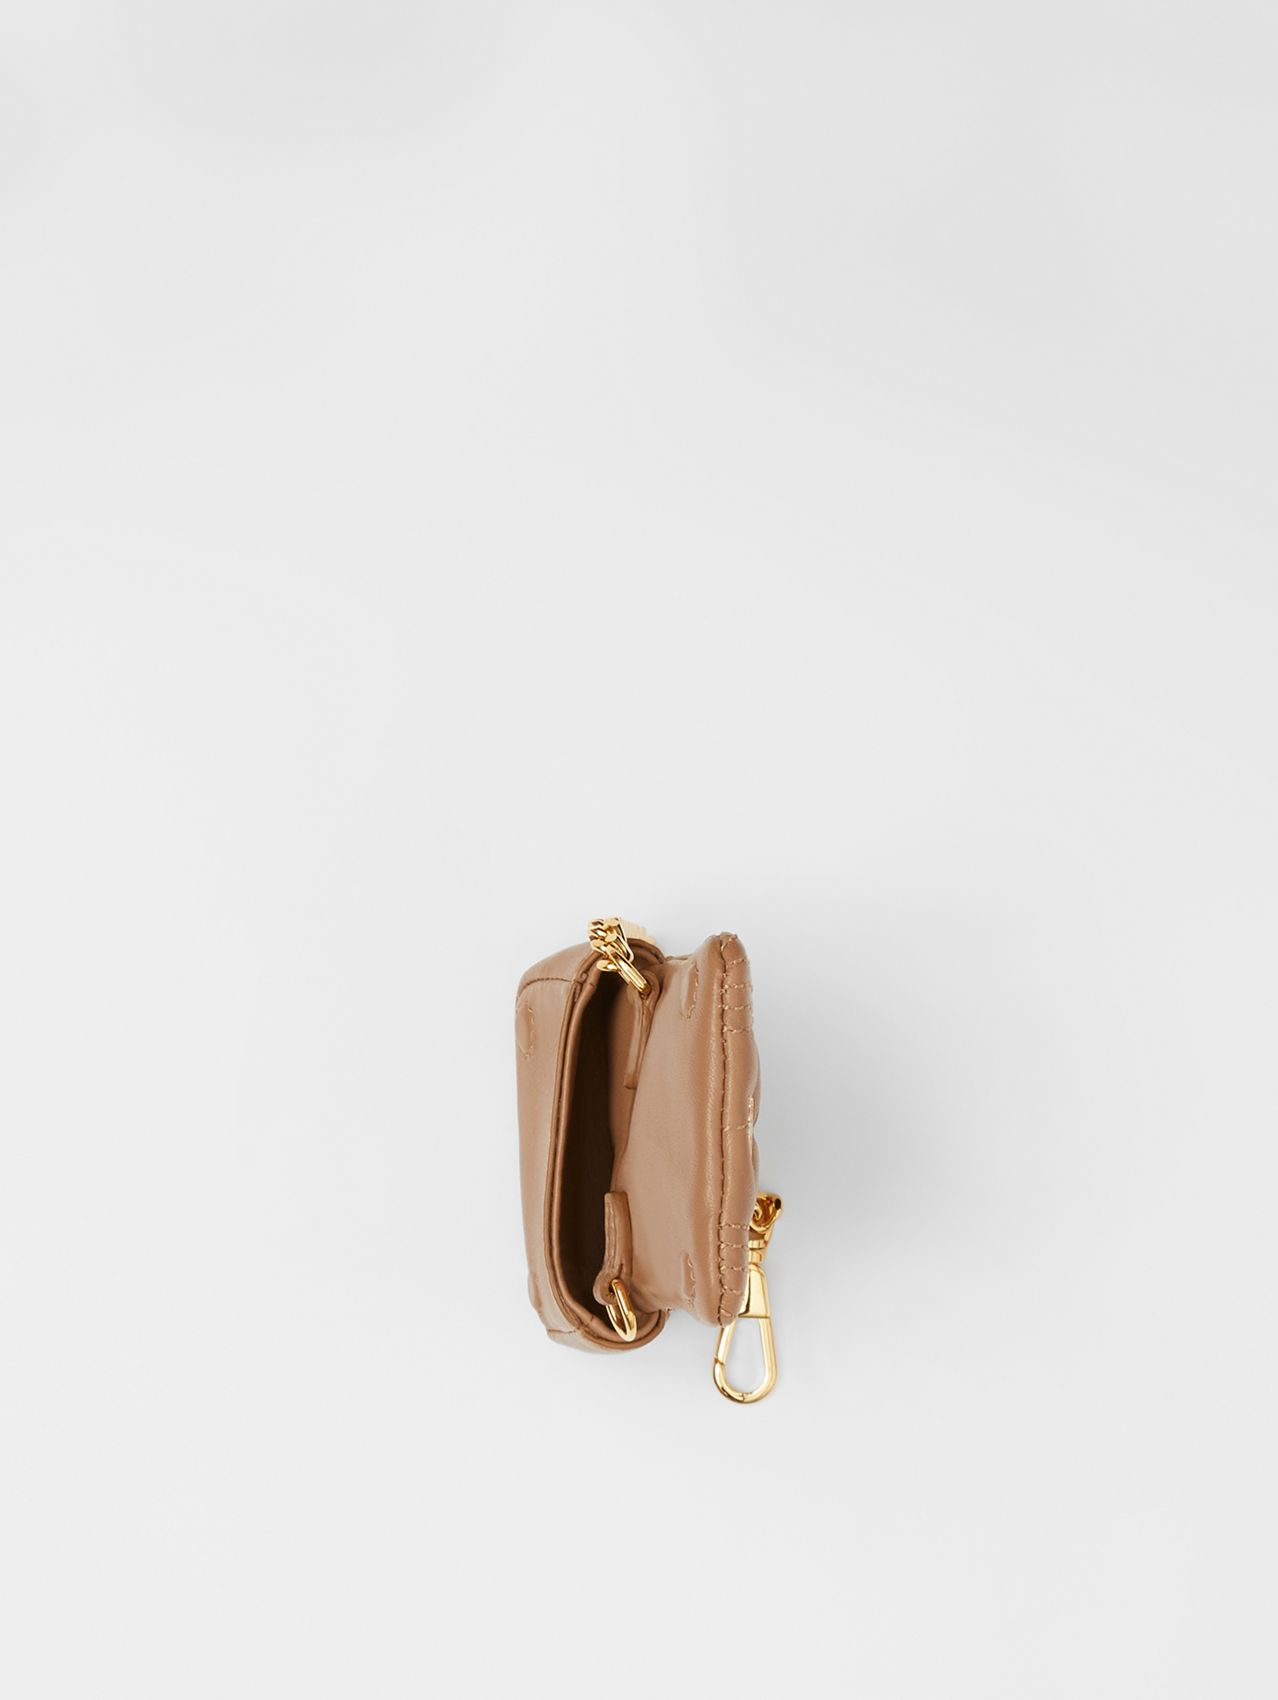 Quilted Lambskin AirPods Pro Case in Camel